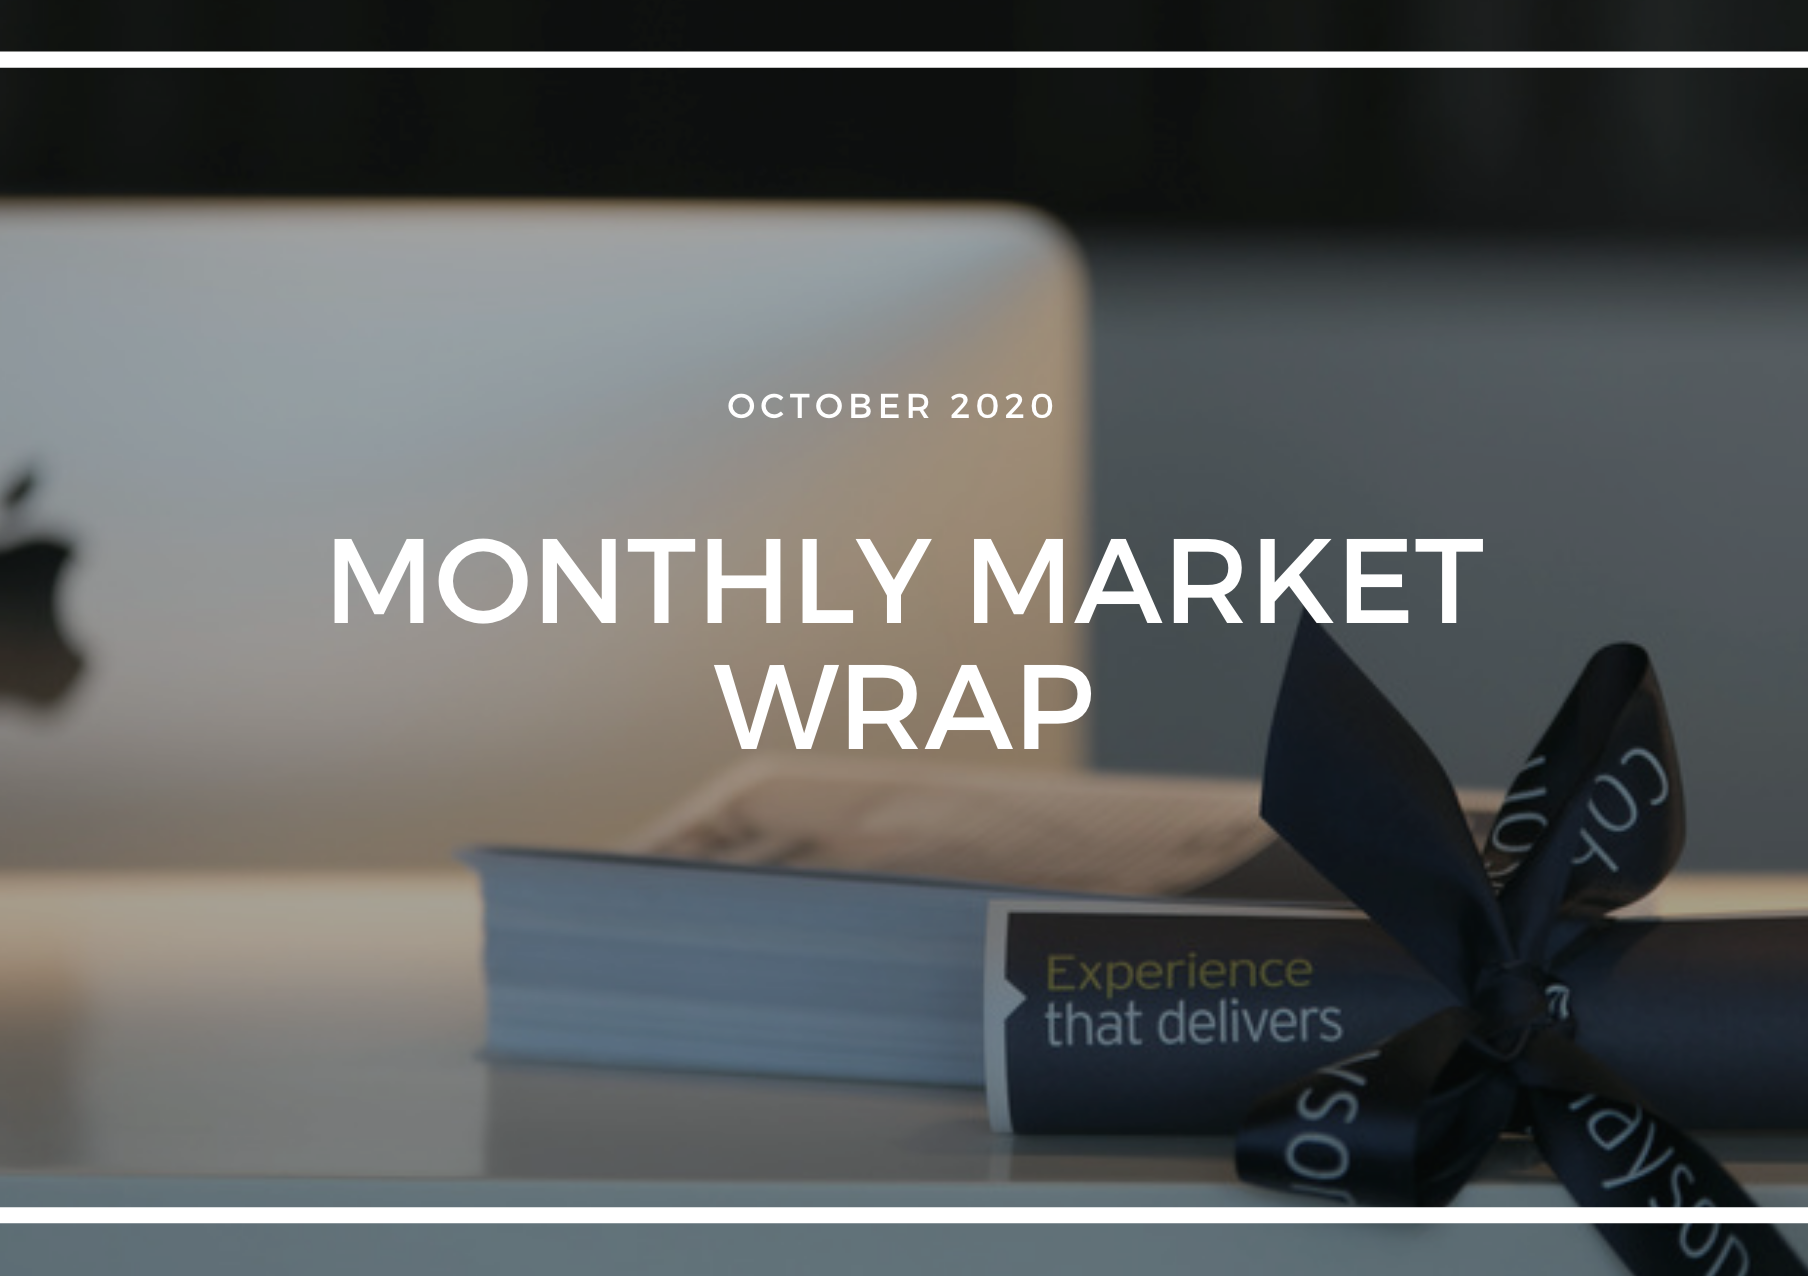 MONTHLY MARKET WRAP: OCTOBER 2020